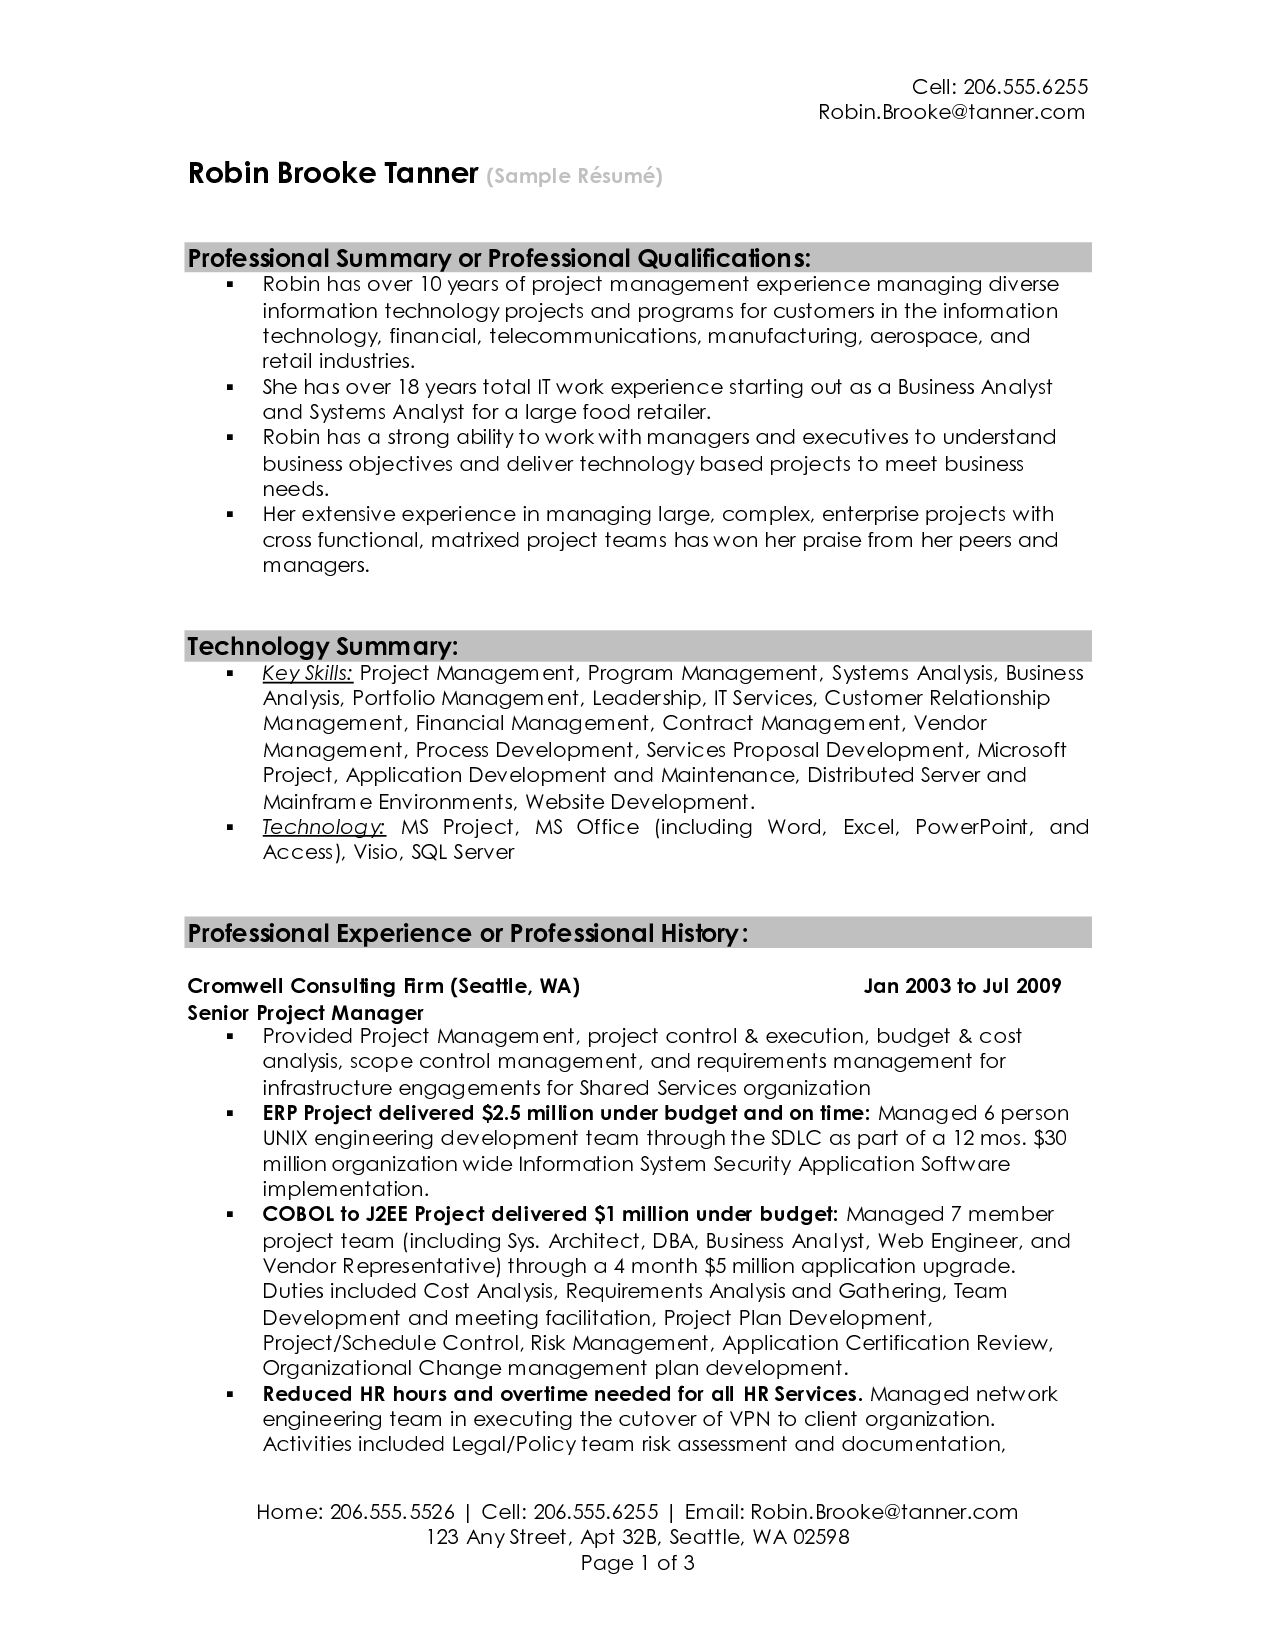 Professional Summary Resume Examples Professional Resume Summary Examples 77e7fb28f  resume